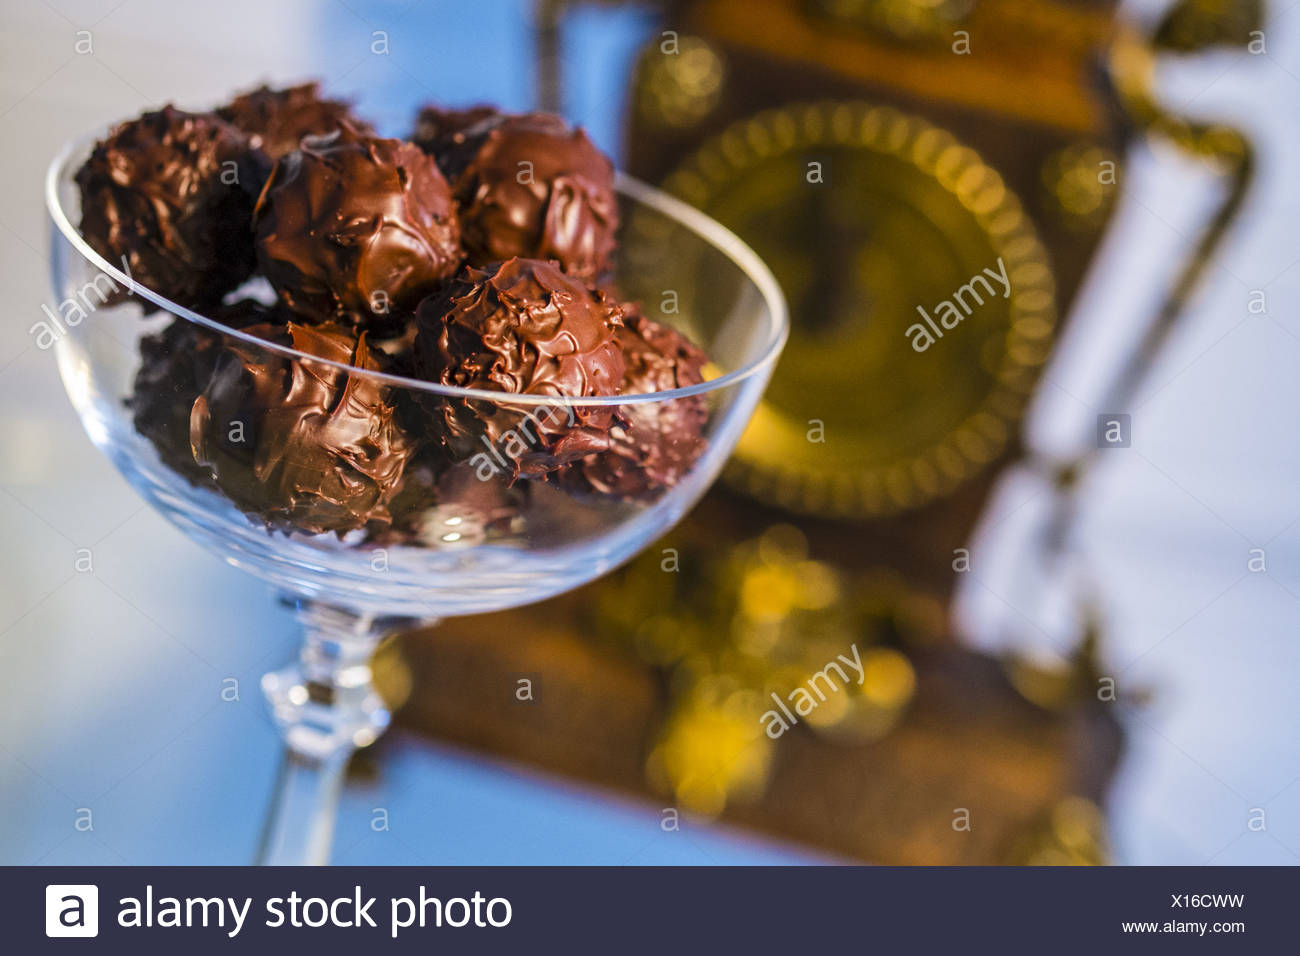 sweetie - Stock Image